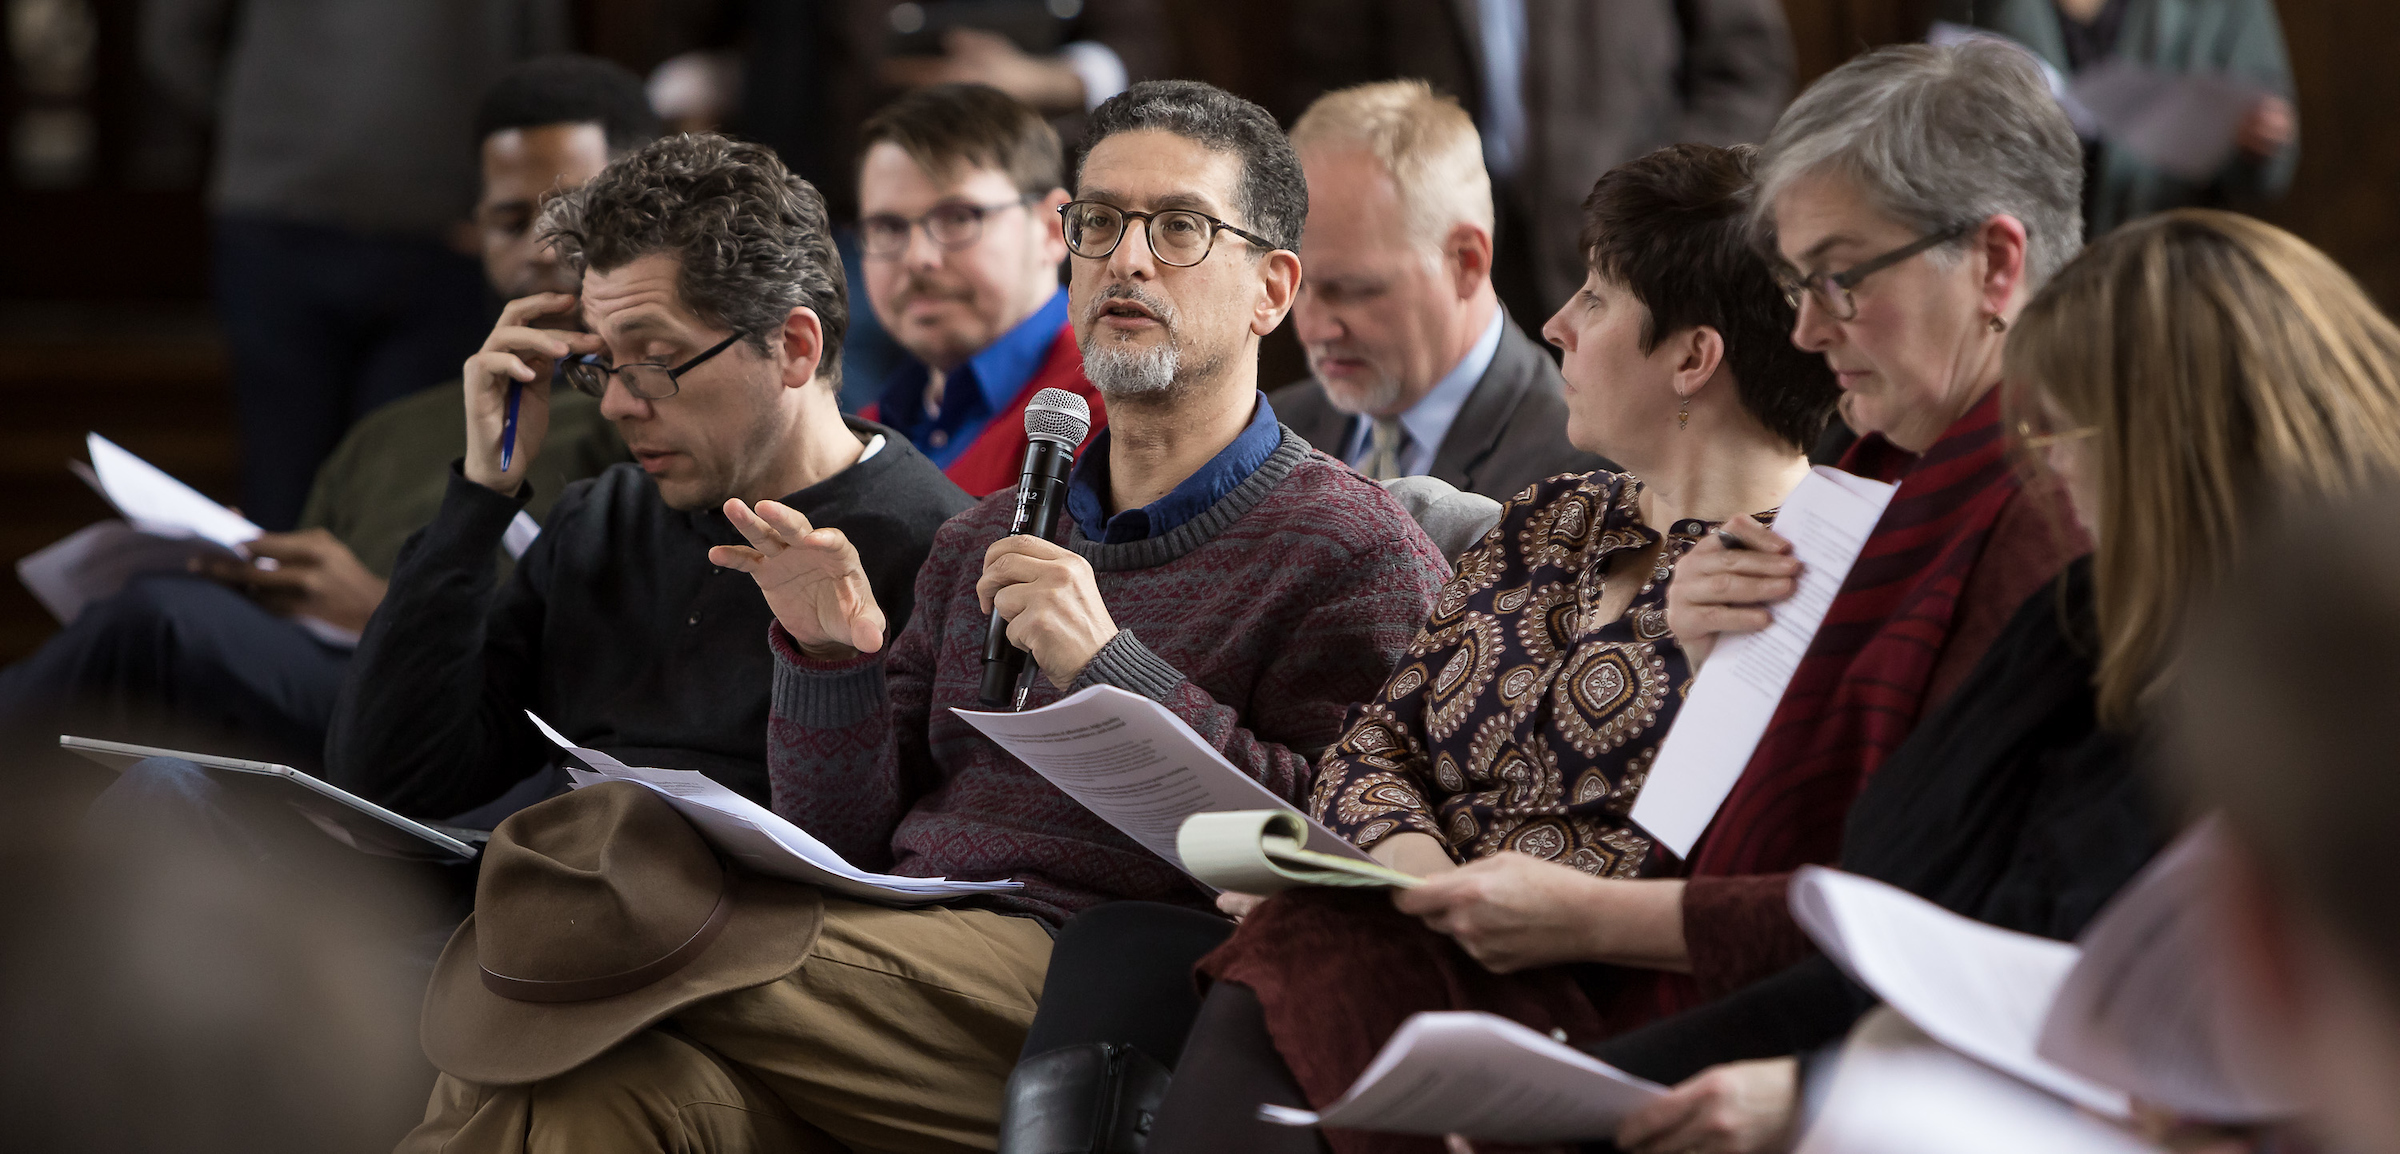 Khaled Keshk, associate professor and chair of Religious Studies, comments during a town hall